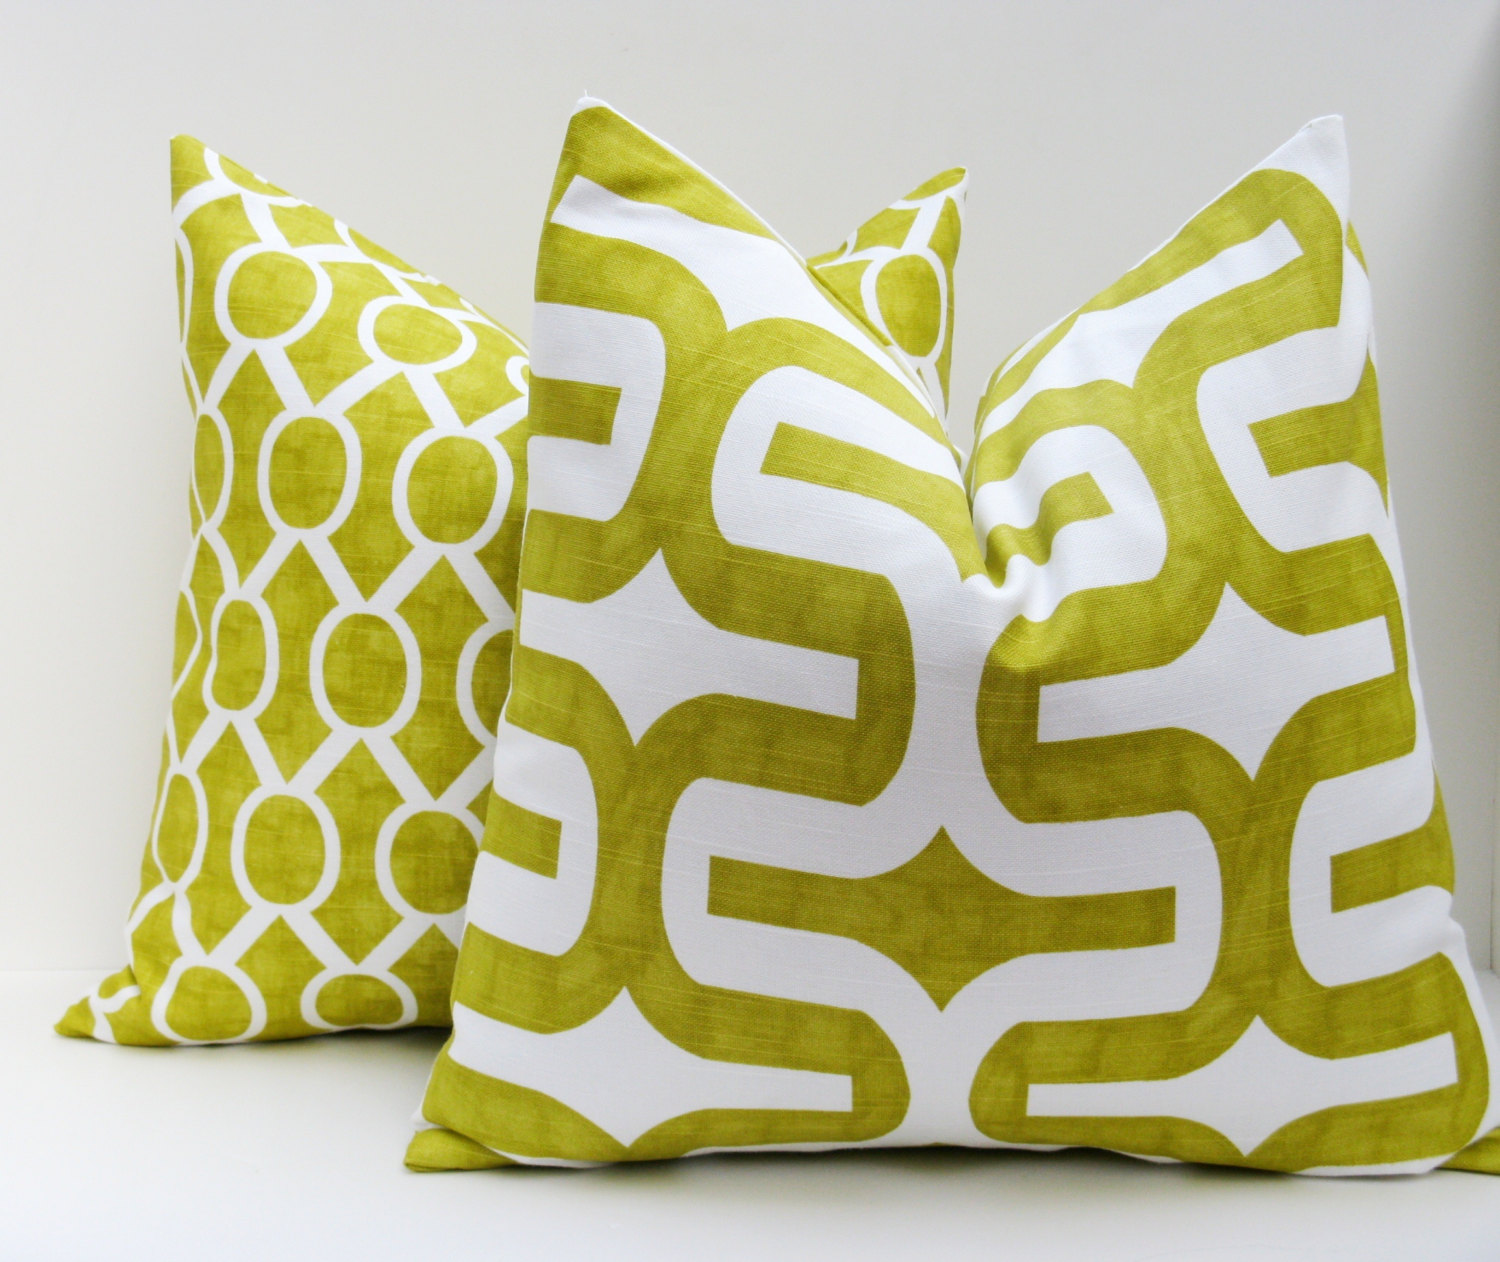 Fall Throw Pillows | Make Decorative Pillow Covers | Decorative Pillow Covers